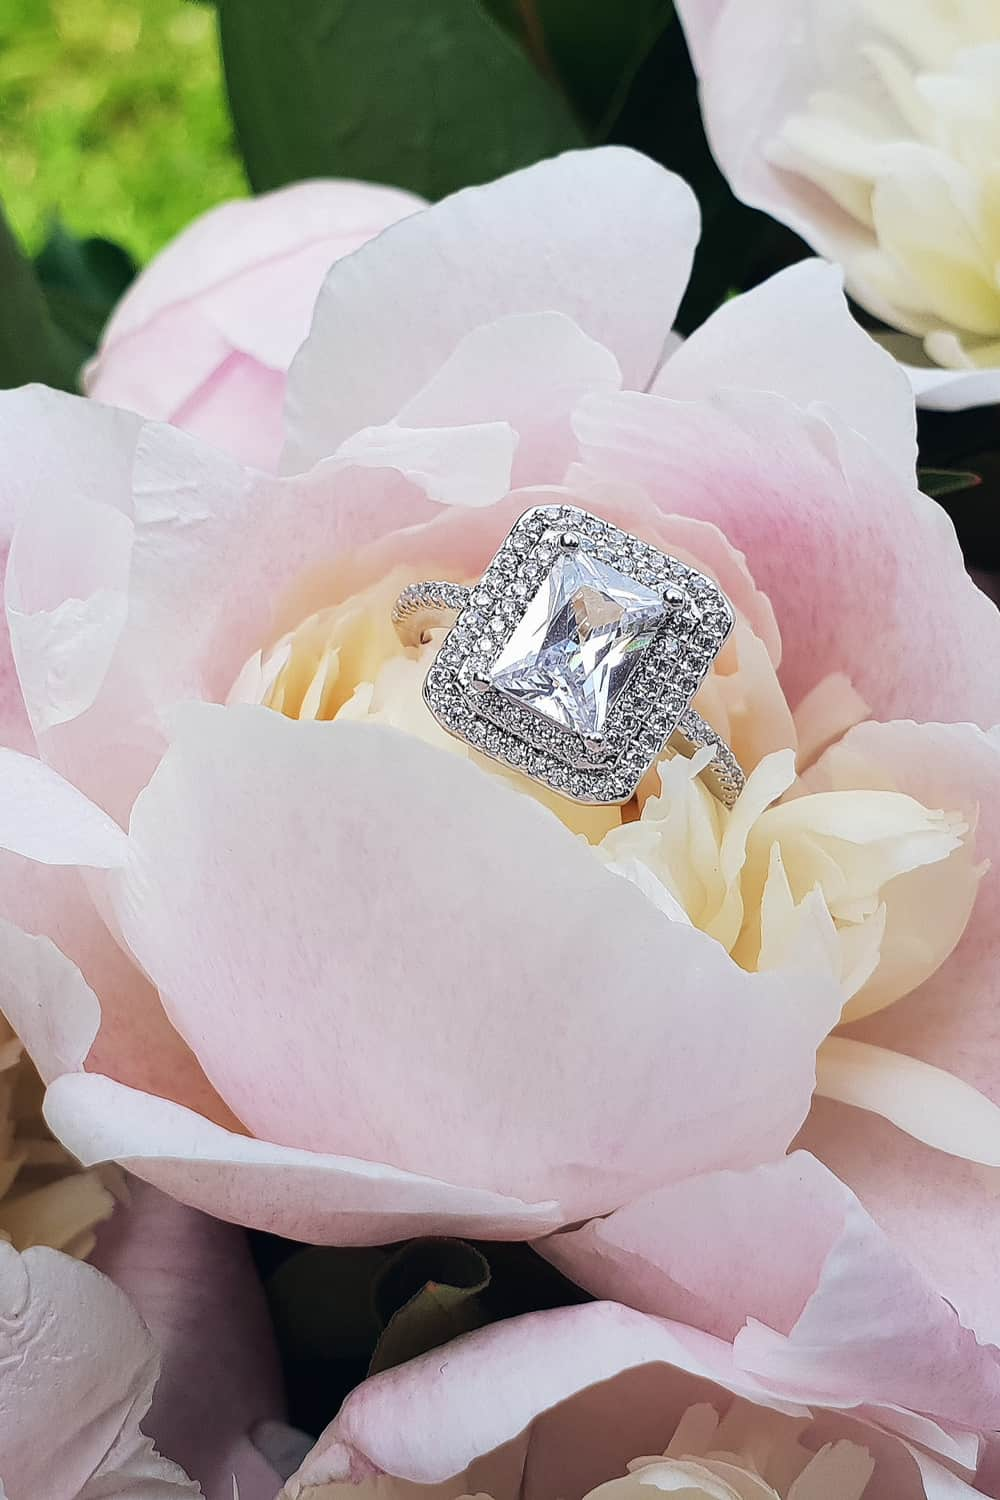 Get an Excellent Engagement Ring for Less Money